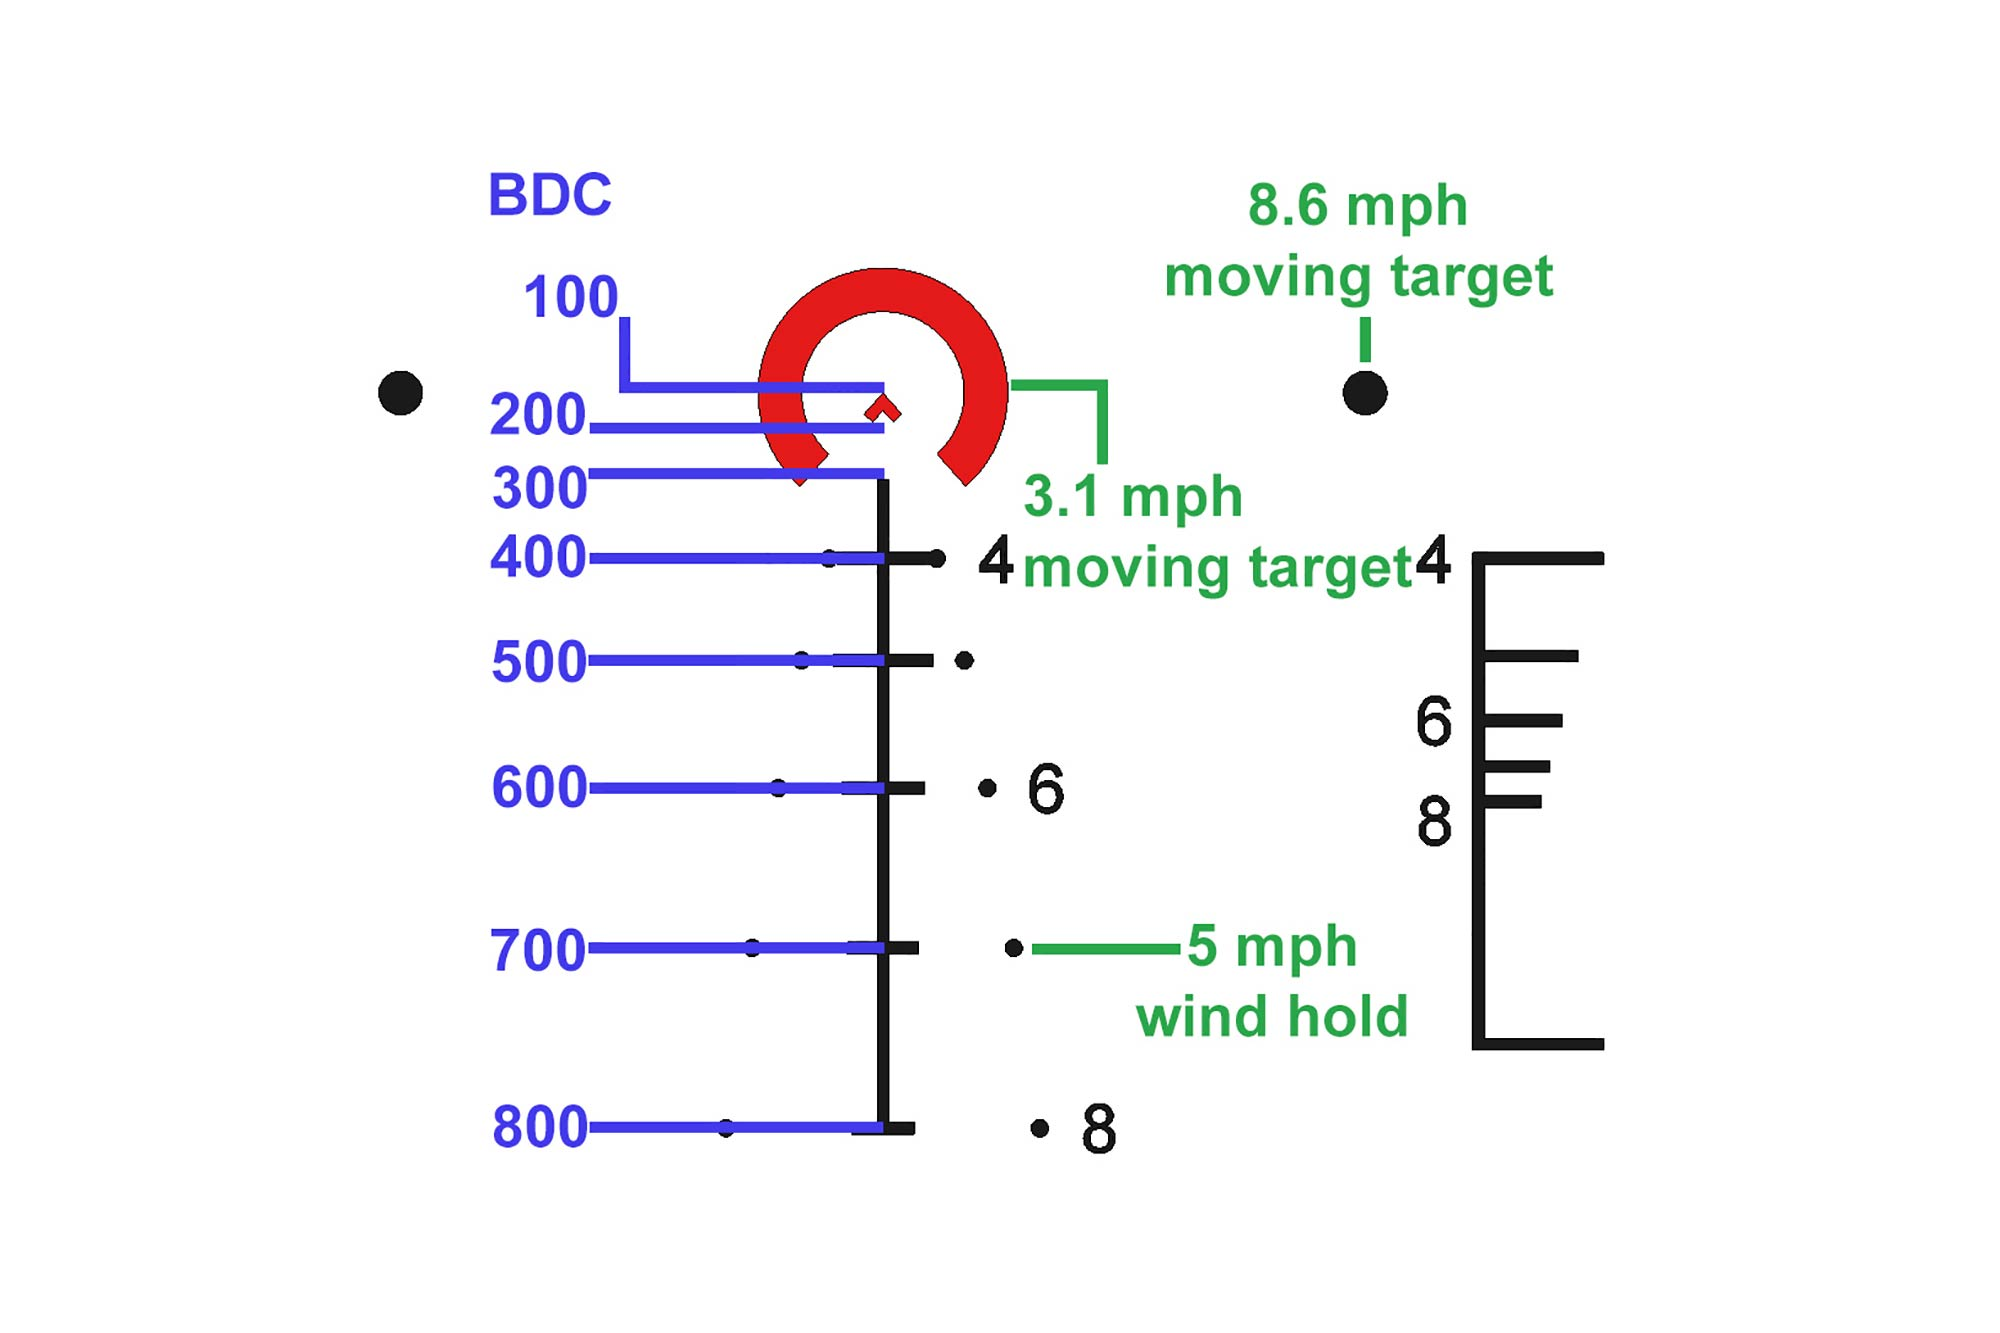 The Primary ACSS reticle on the 1-8x24mm optic has BDC and moving target holds